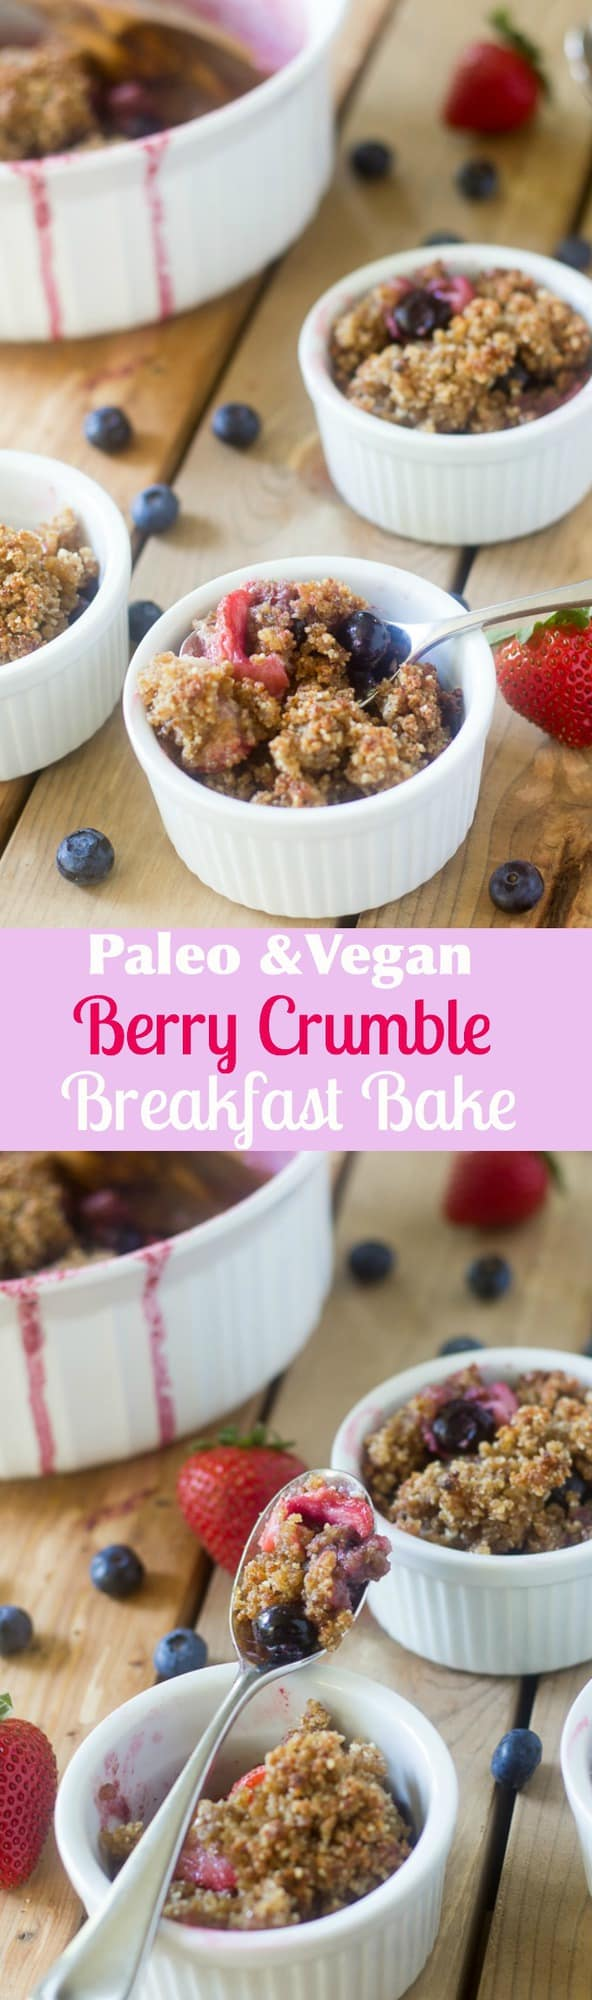 Berry Crumble Breakfast Bake {Paleo & Vegan}